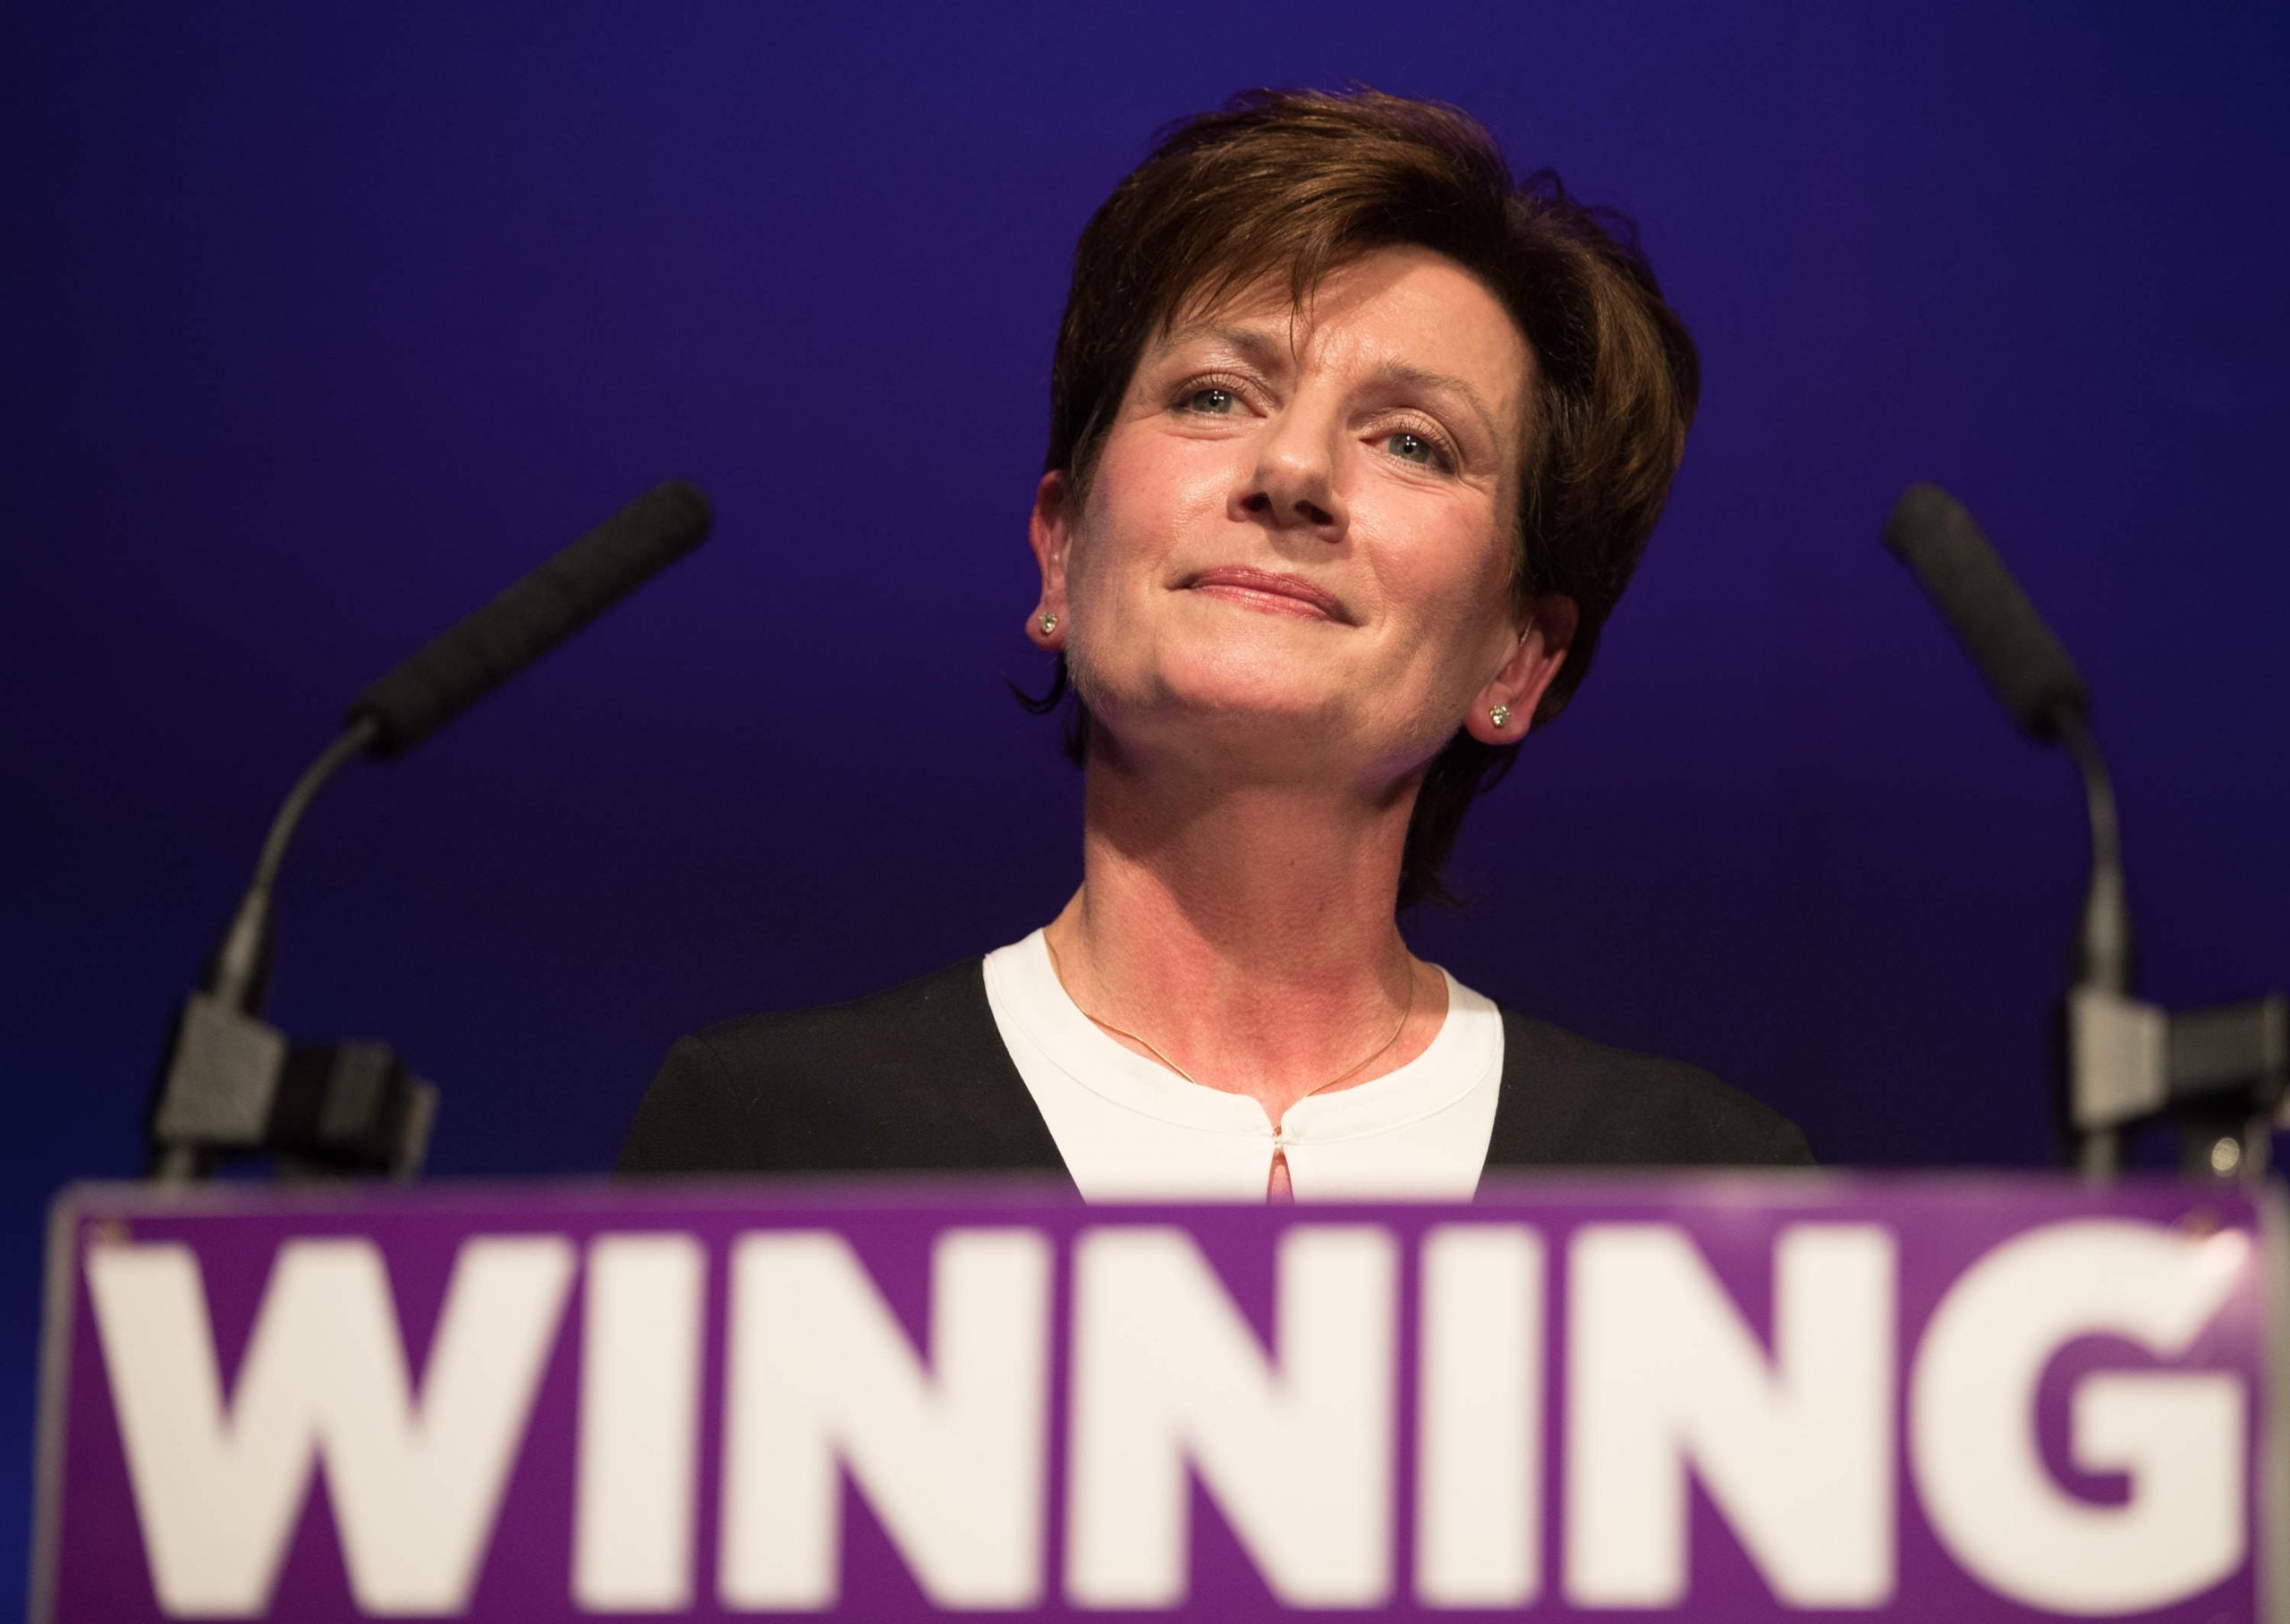 Why Ukip's new leader Diane James should terrify both Labour and the Tories